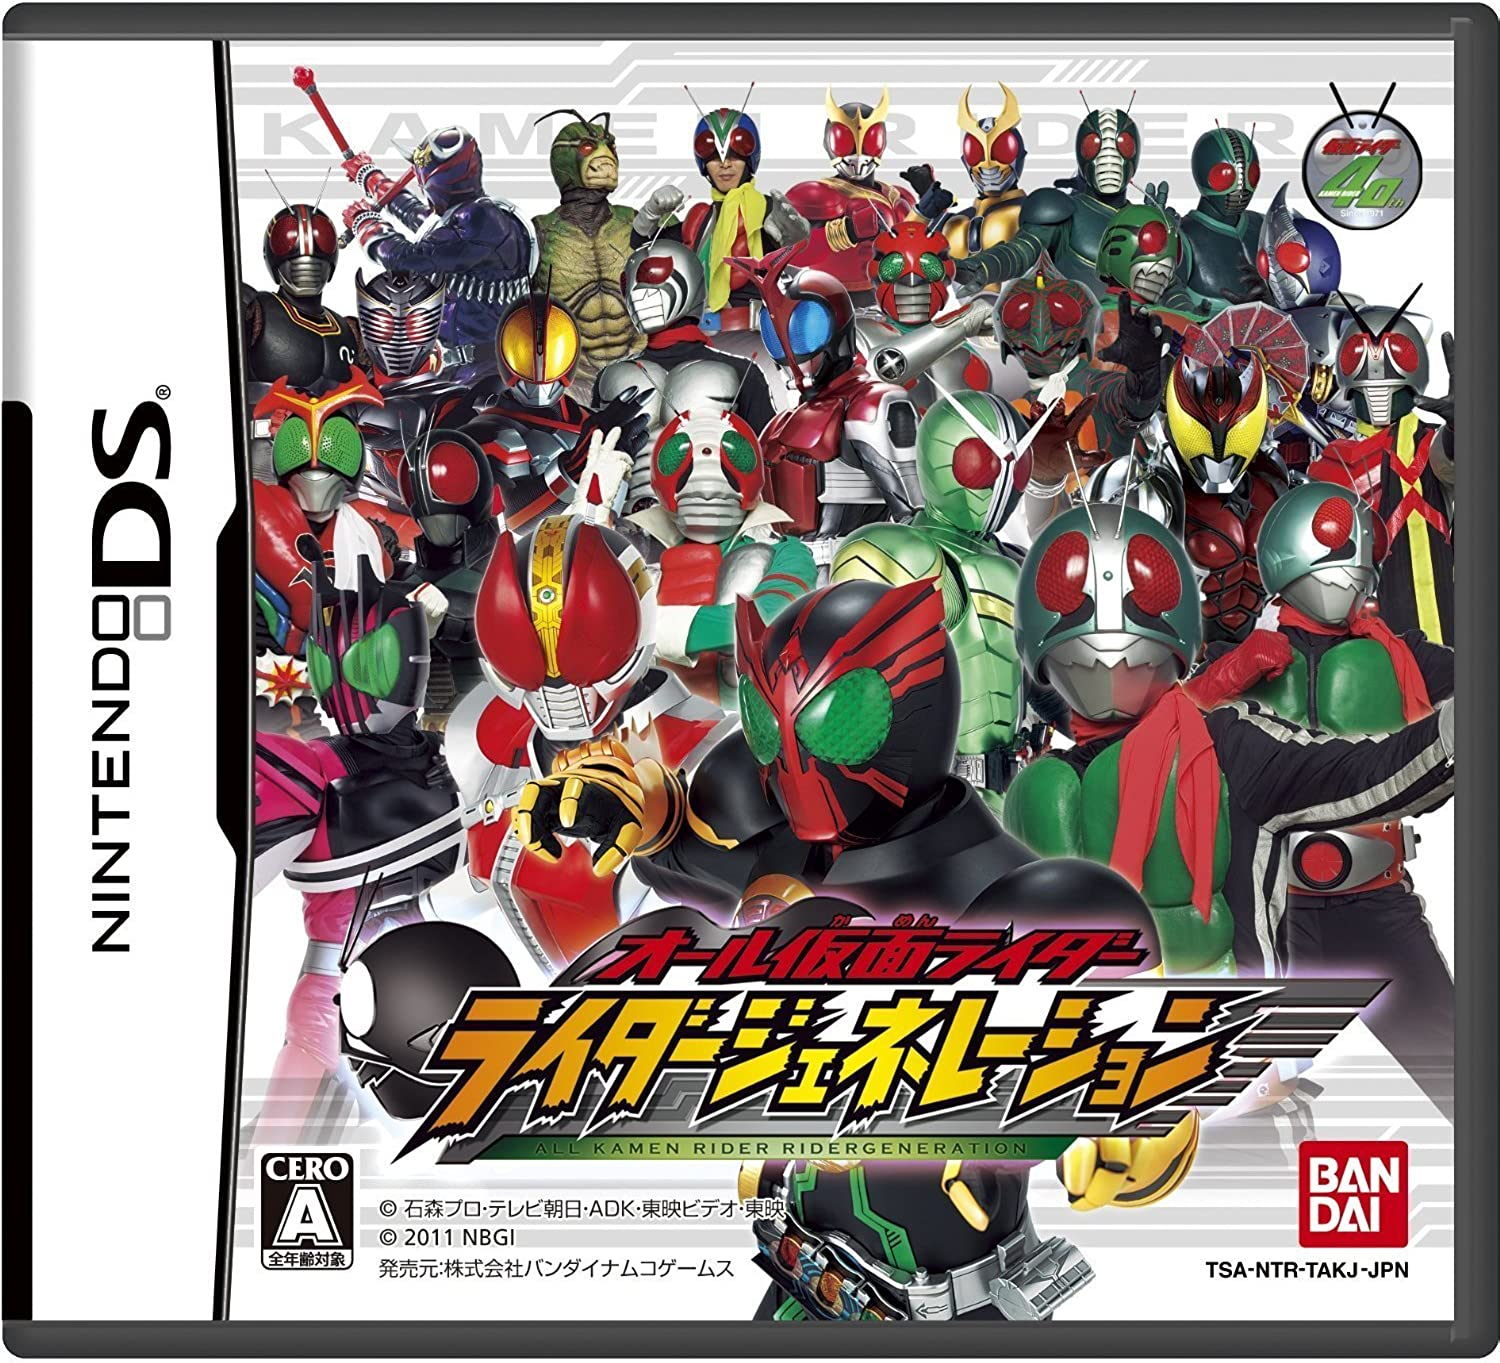 W gorgeous benefits All Kamen Rider Generation first enclosure privilege as  special original Ganbaride card  reservation privilege of  title sheet dress-up All Riders   (japan import) B005I0I2K2 Moderner Modus  | Perfekt In Verarbeitung